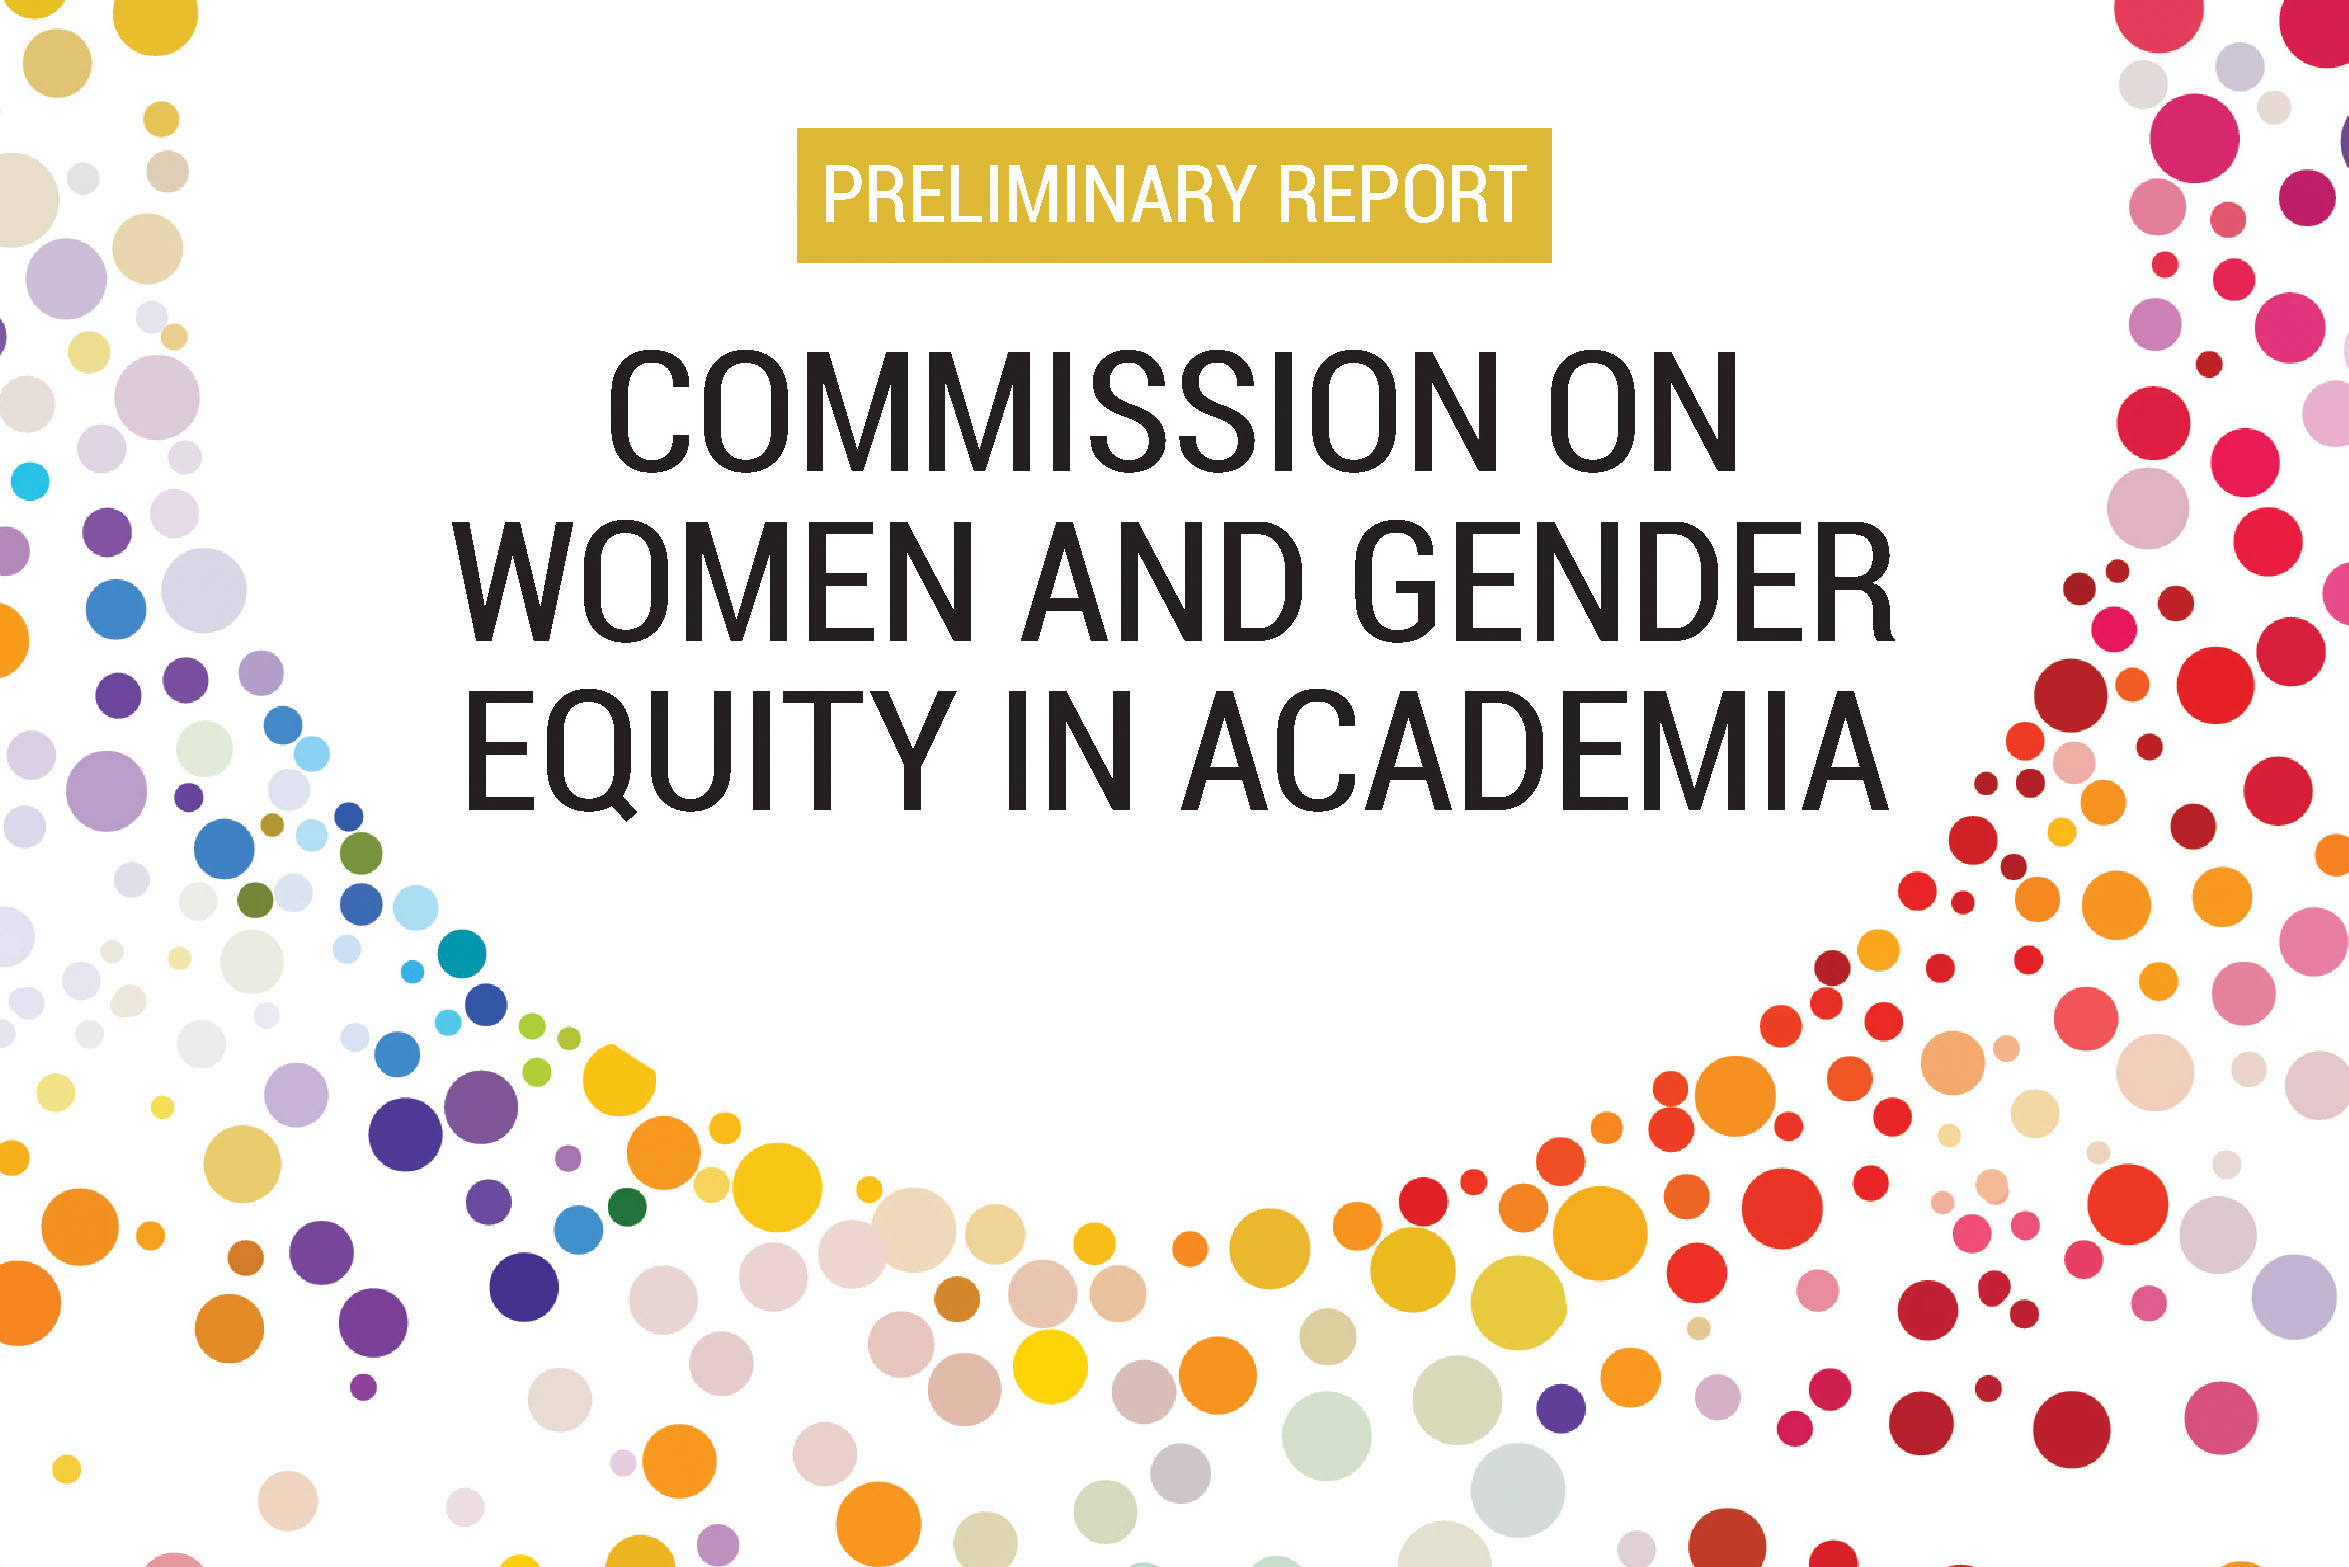 University of Rochester Commission on Women and Gender Equity in Academia co-chairs Amy Lerner and Antoinette Esce